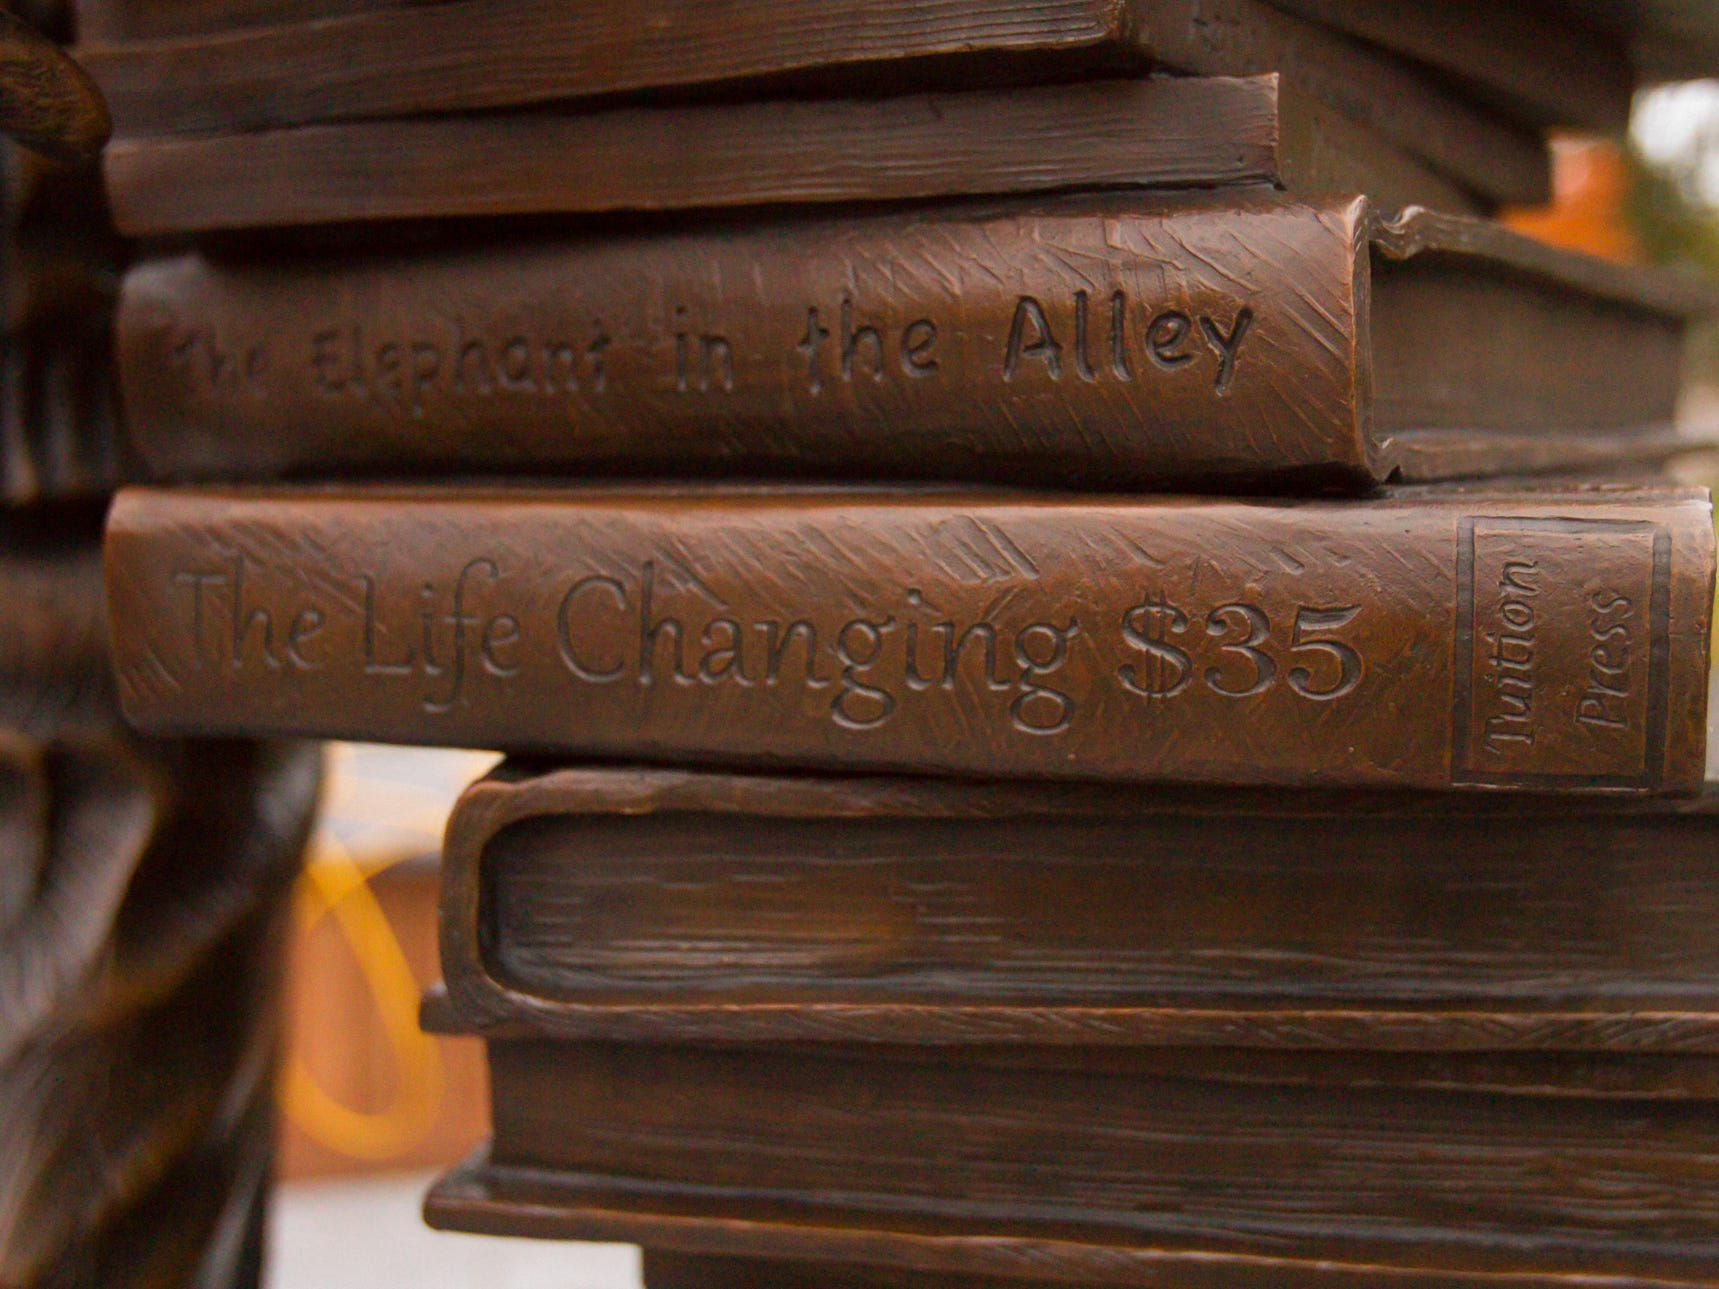 Each book in the Zemp Legacy statue has a title depicting a story of Duane Zemper's life. The statue was installed Thursday, Nov. 1, 2018 and would be unveiled Sunday.